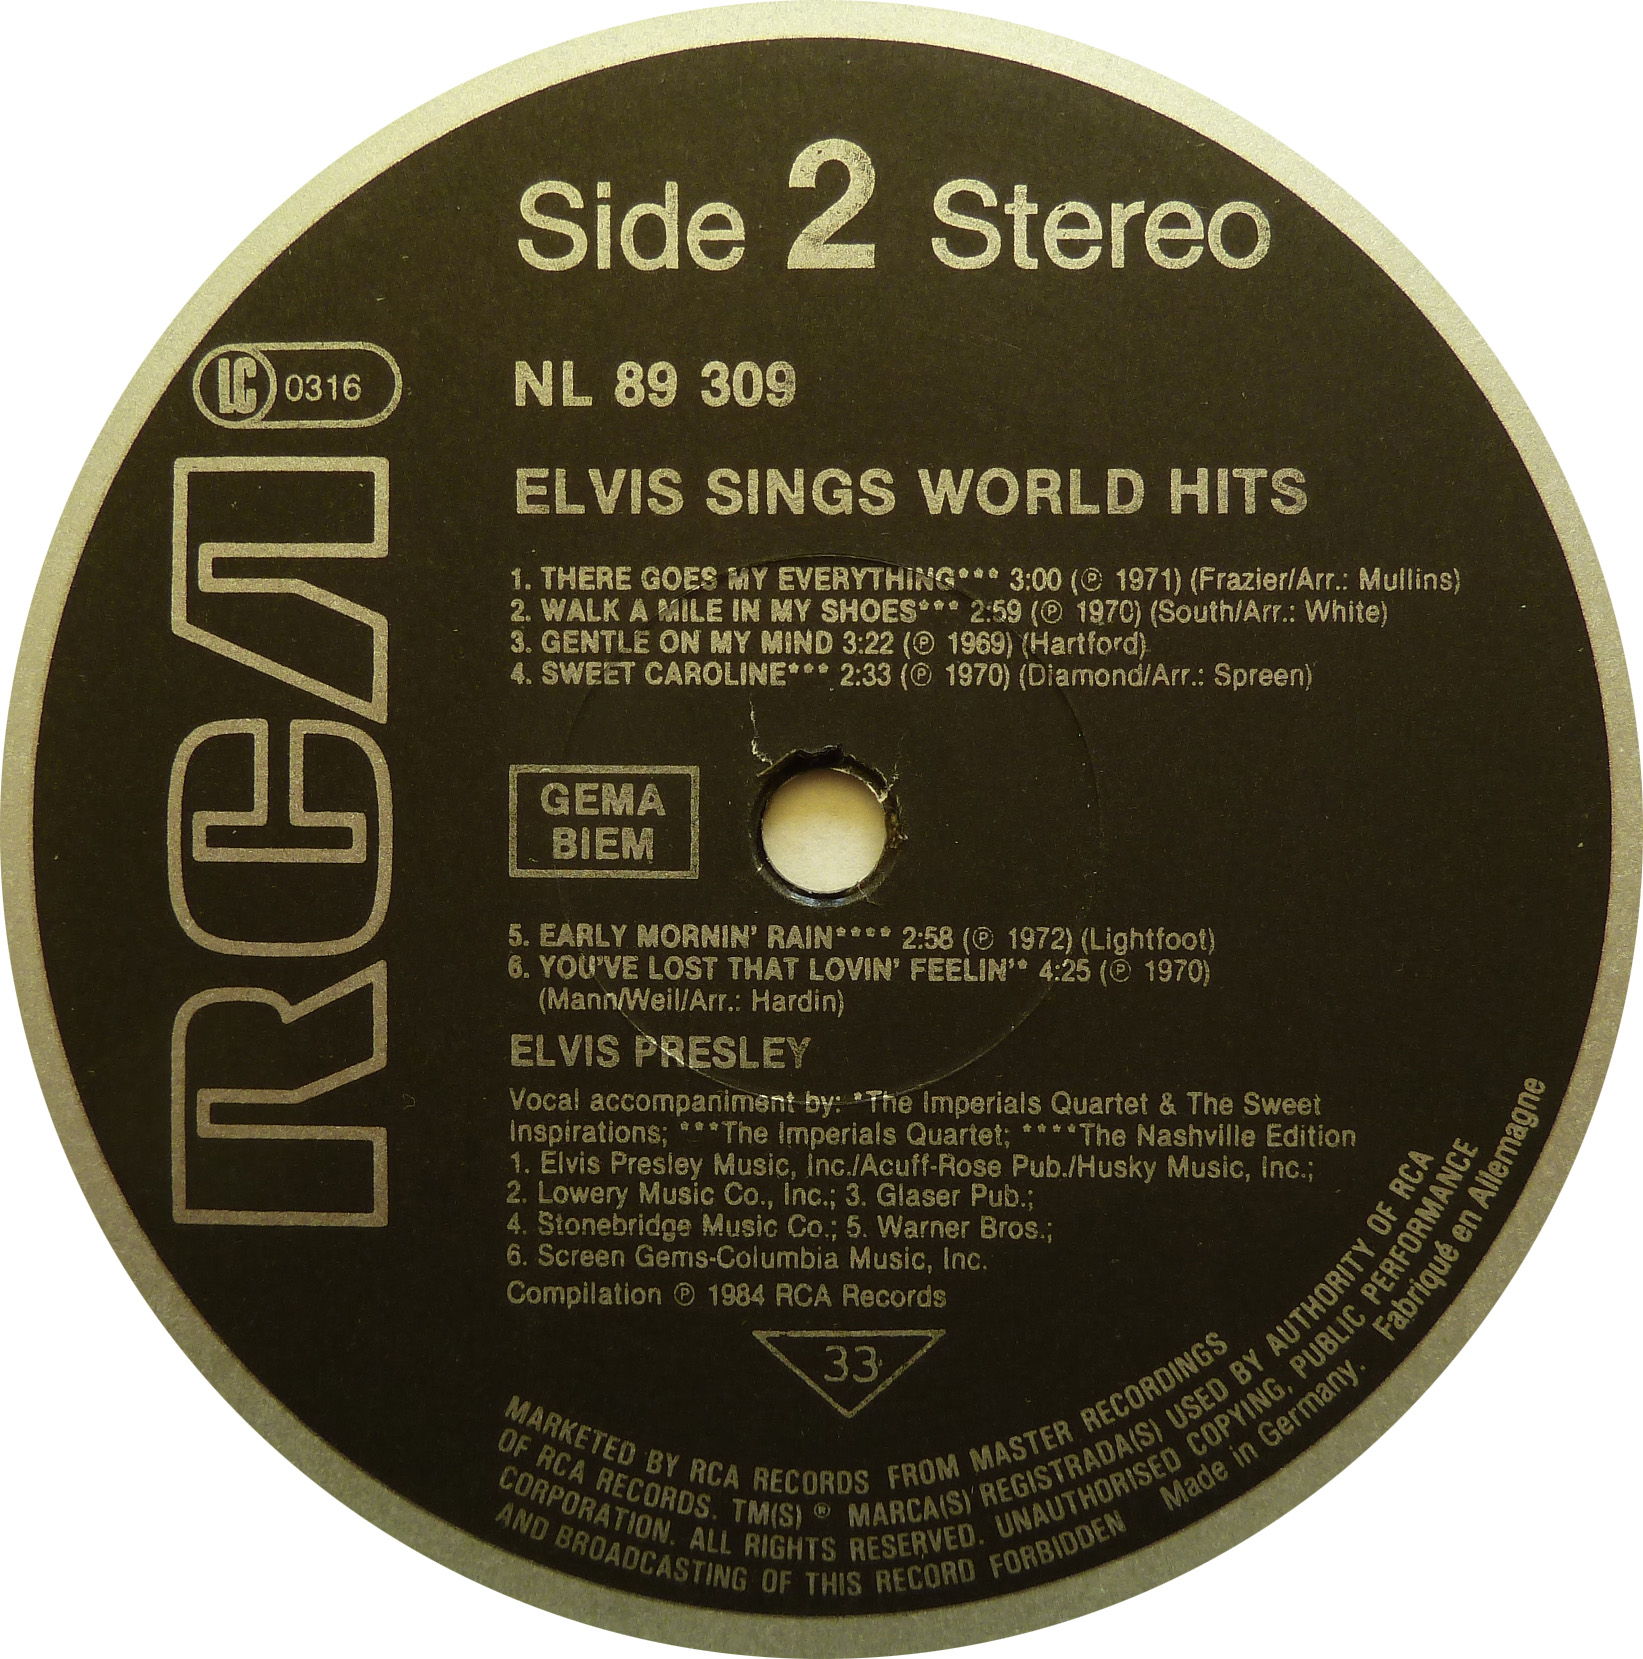 ELVIS SINGS WORLD HITS Worldhits08_84side2pouon